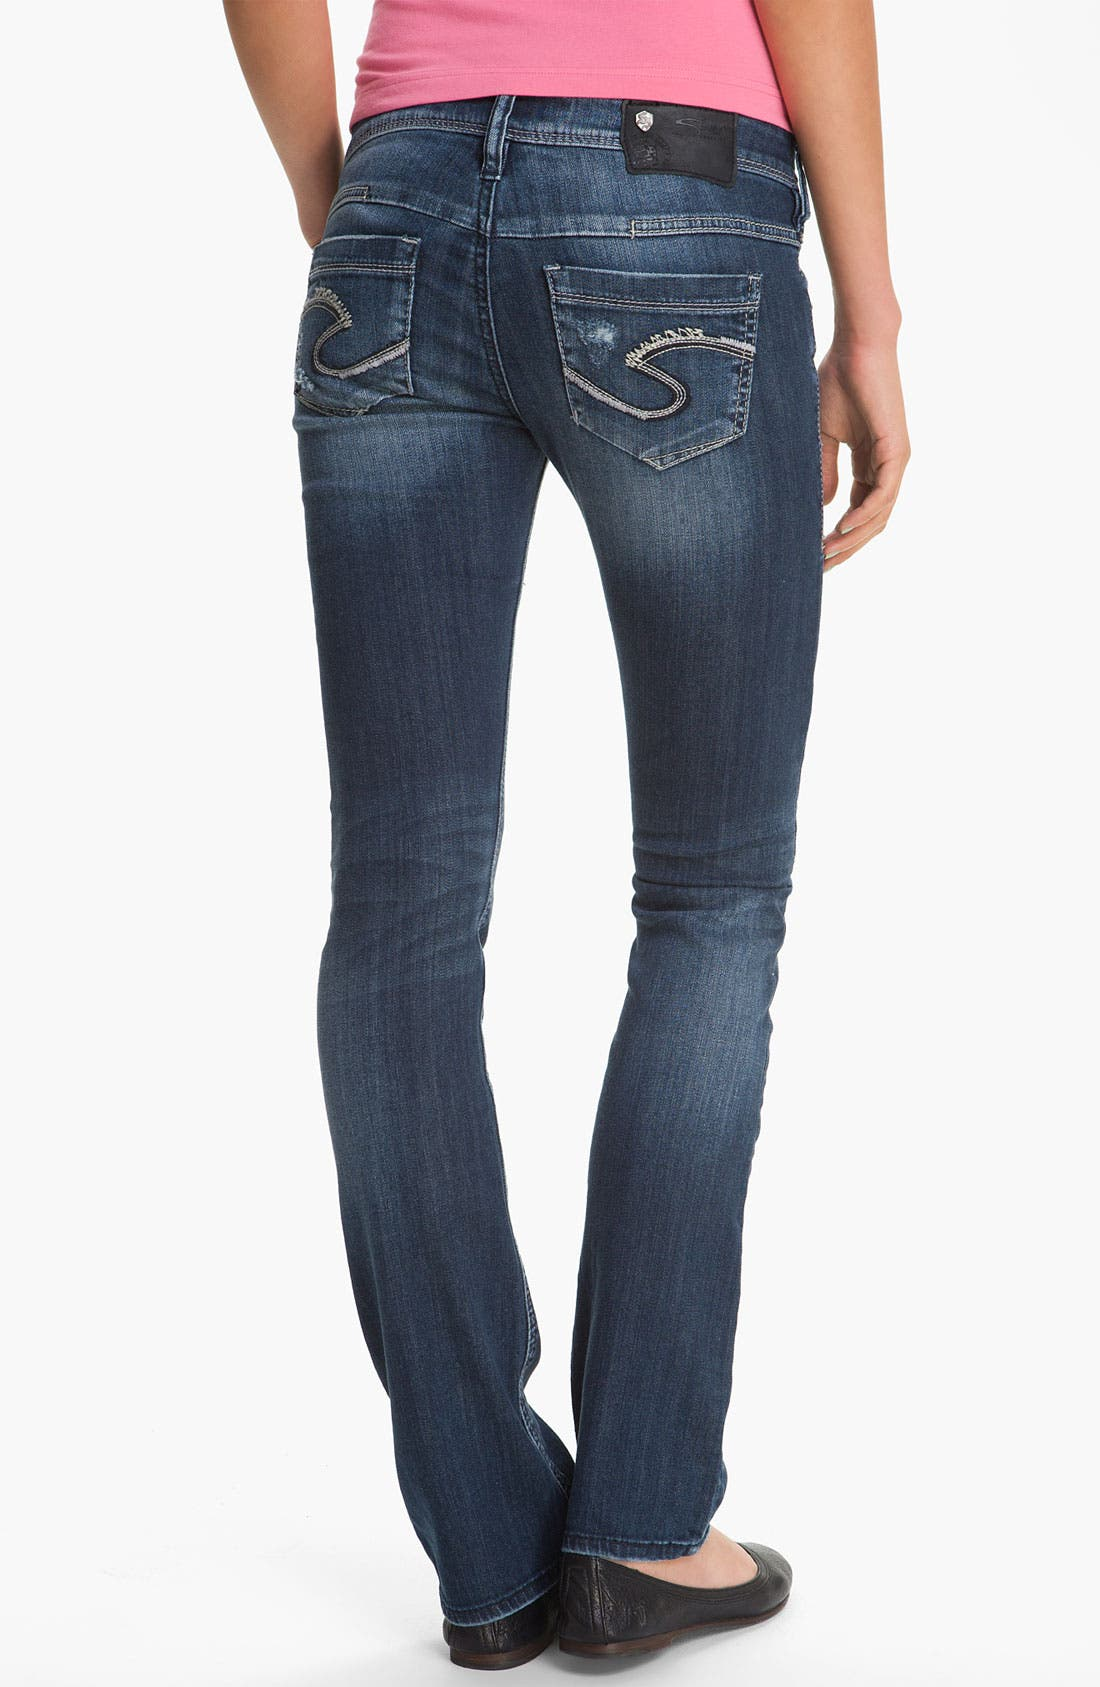 Main Image - Silver Jeans Co. 'Manchester' Straight Leg Jeans (Juniors)